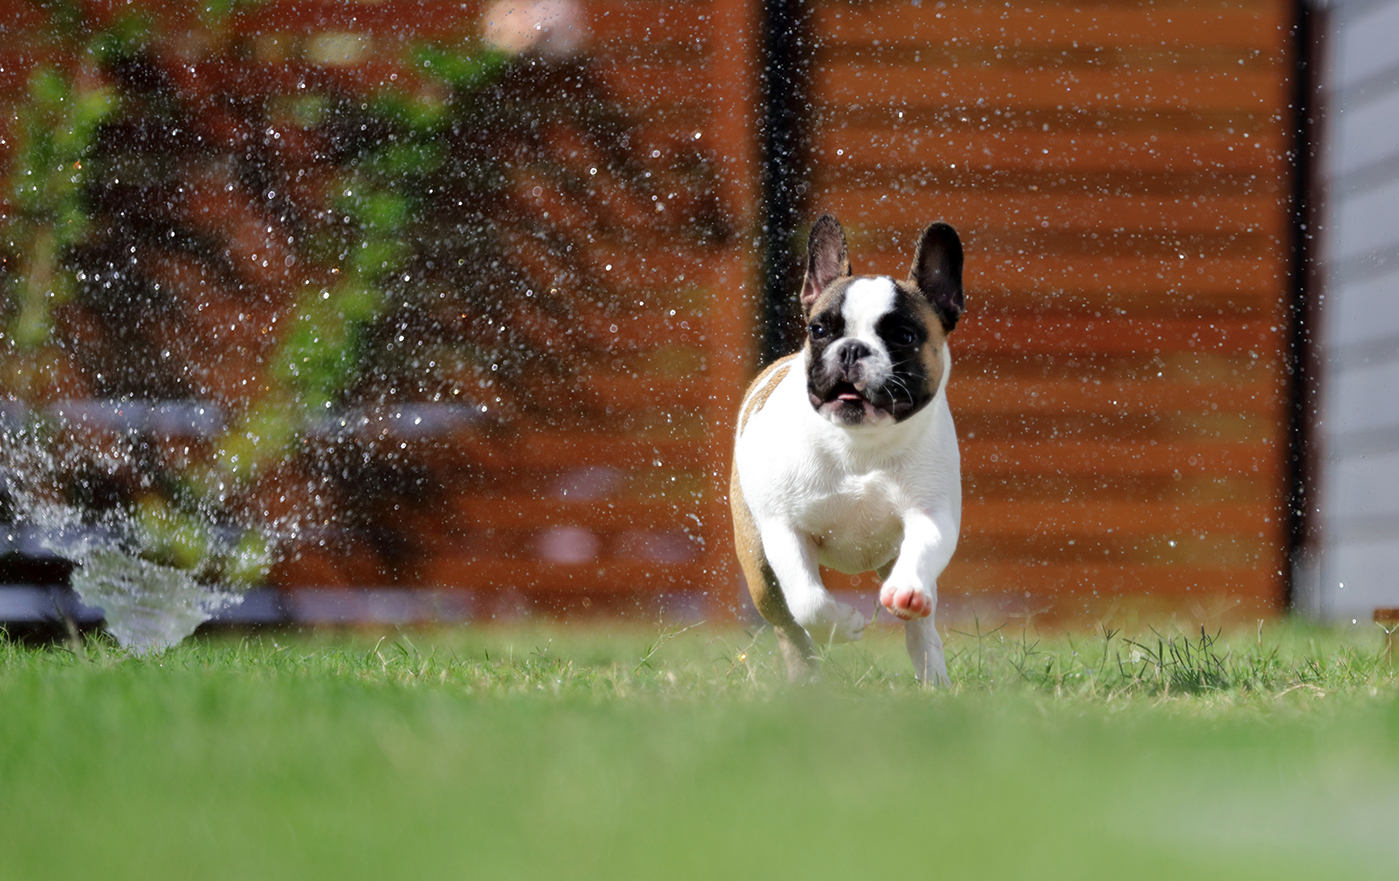 Dog running under water sprinkler in residential backyard